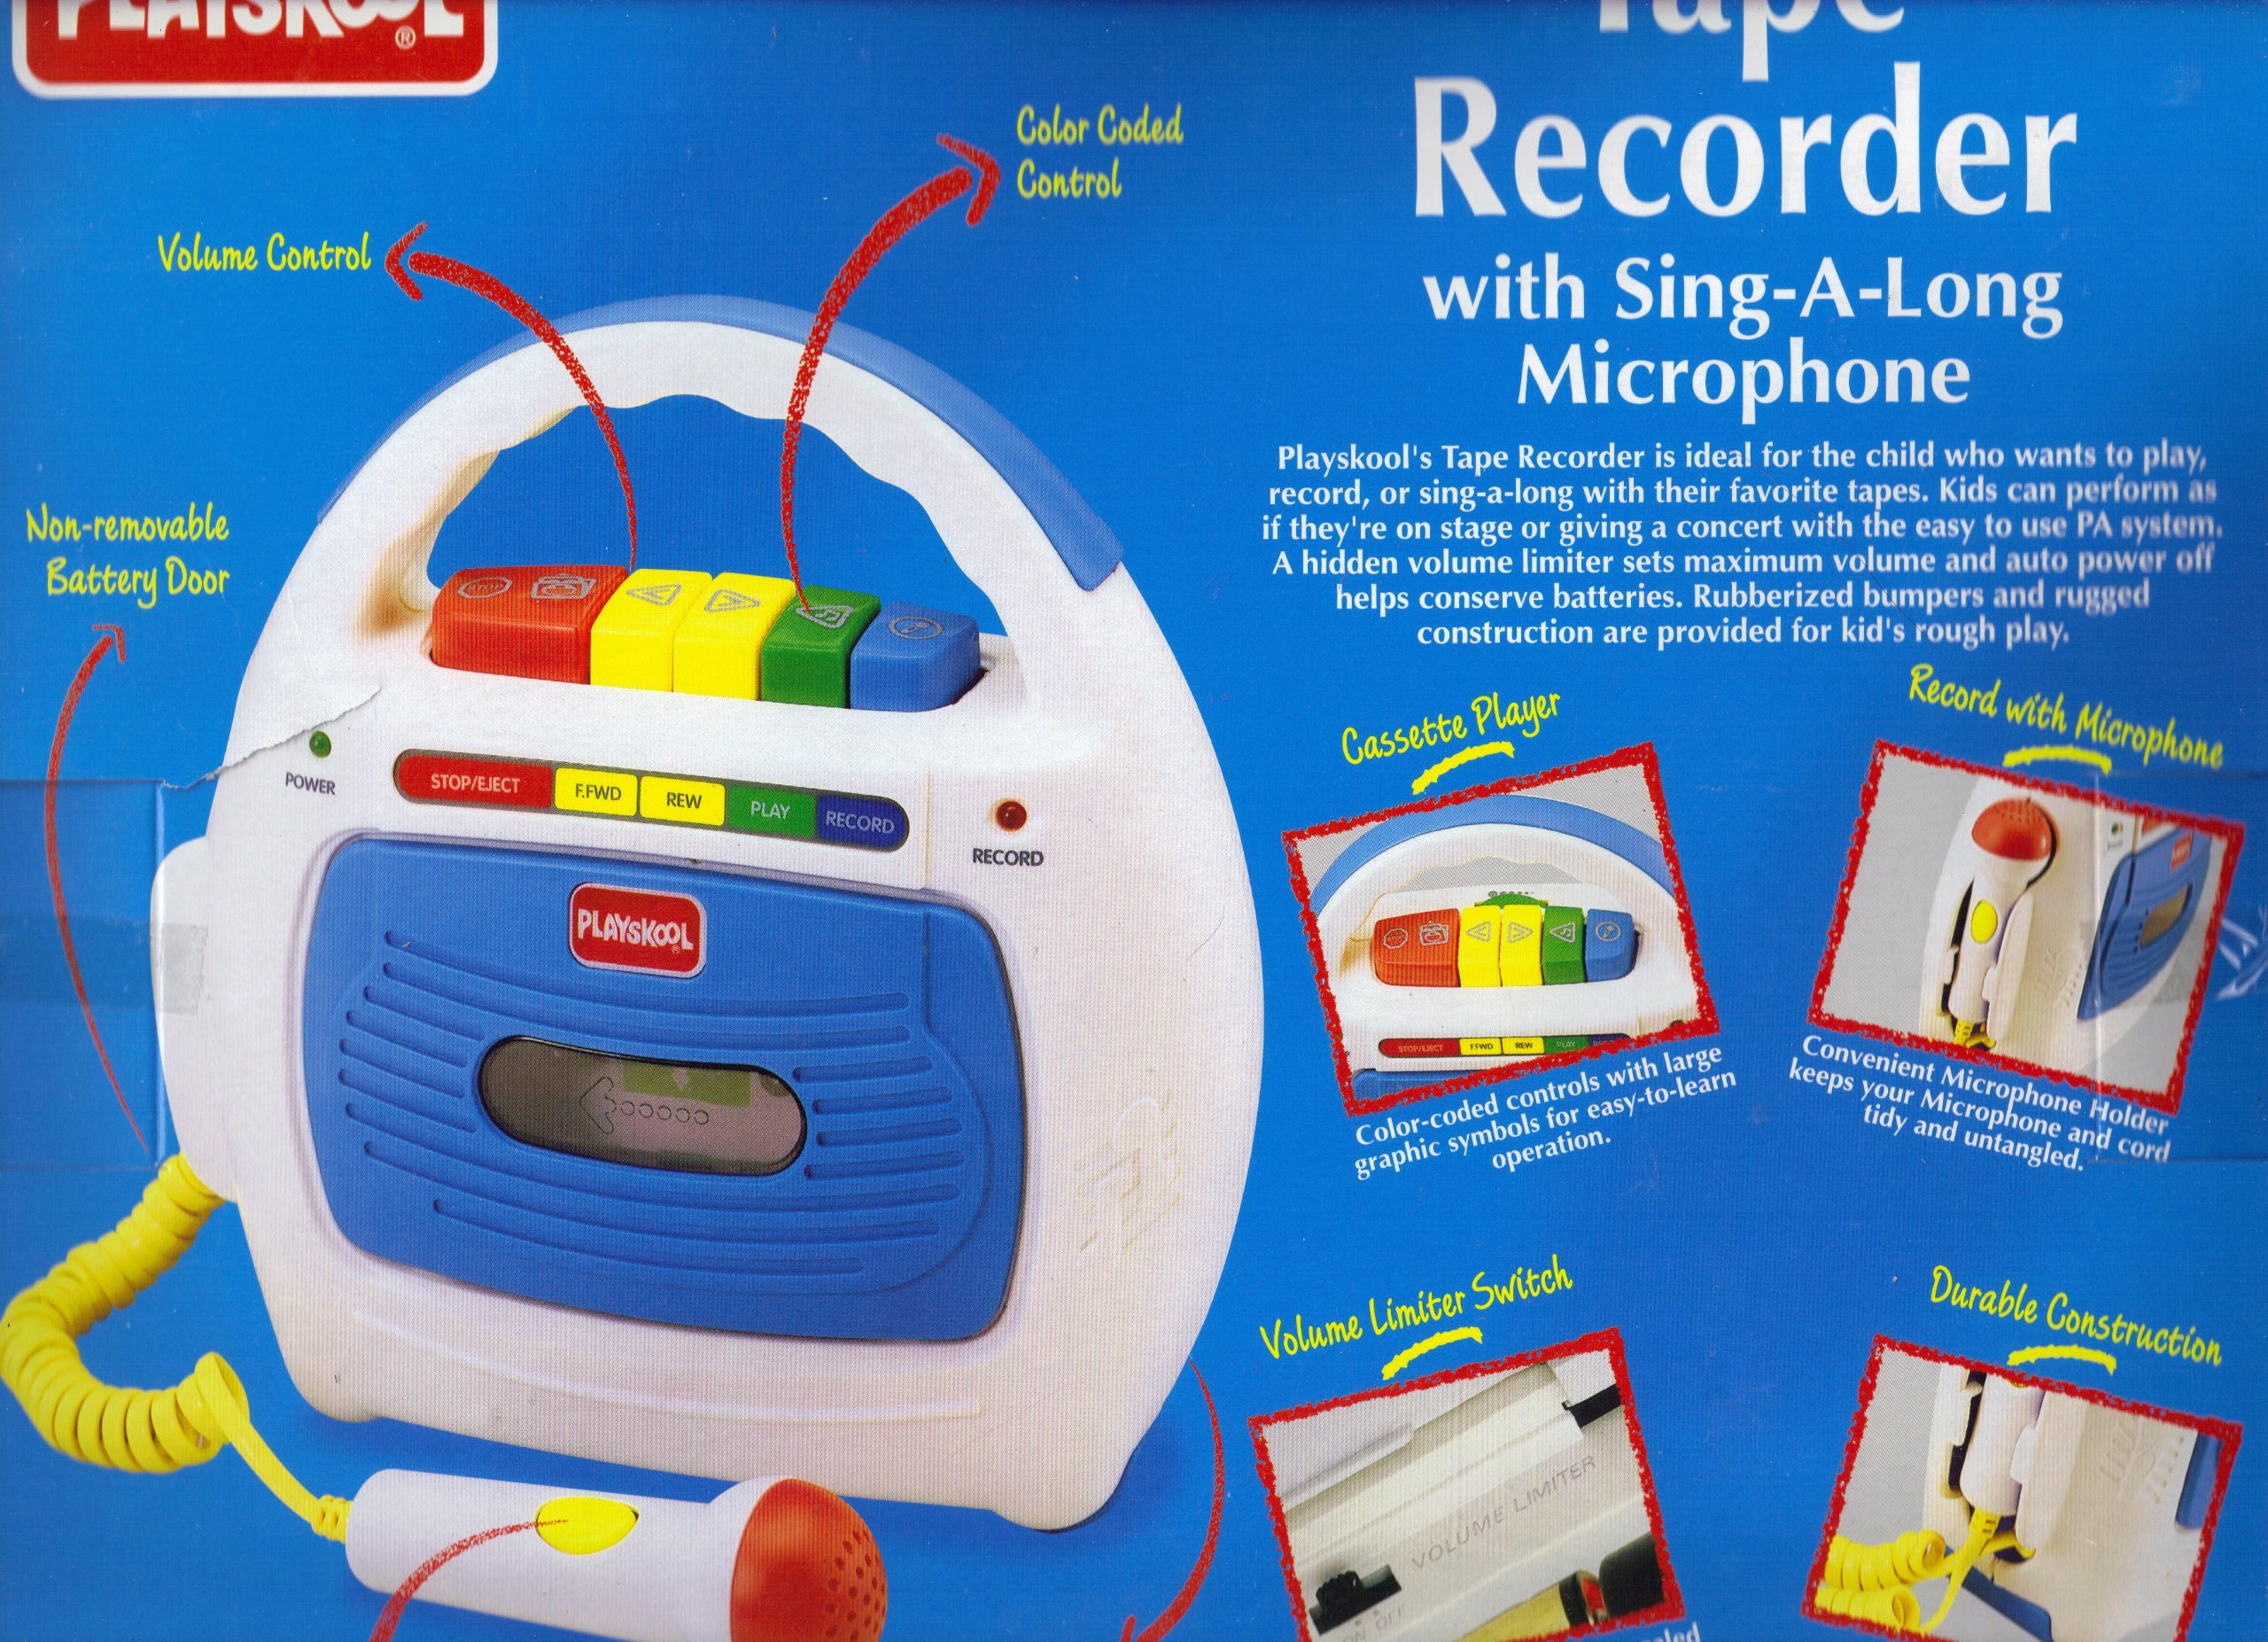 Playskool Tape Player/recorder with Sing-a-long Microphone